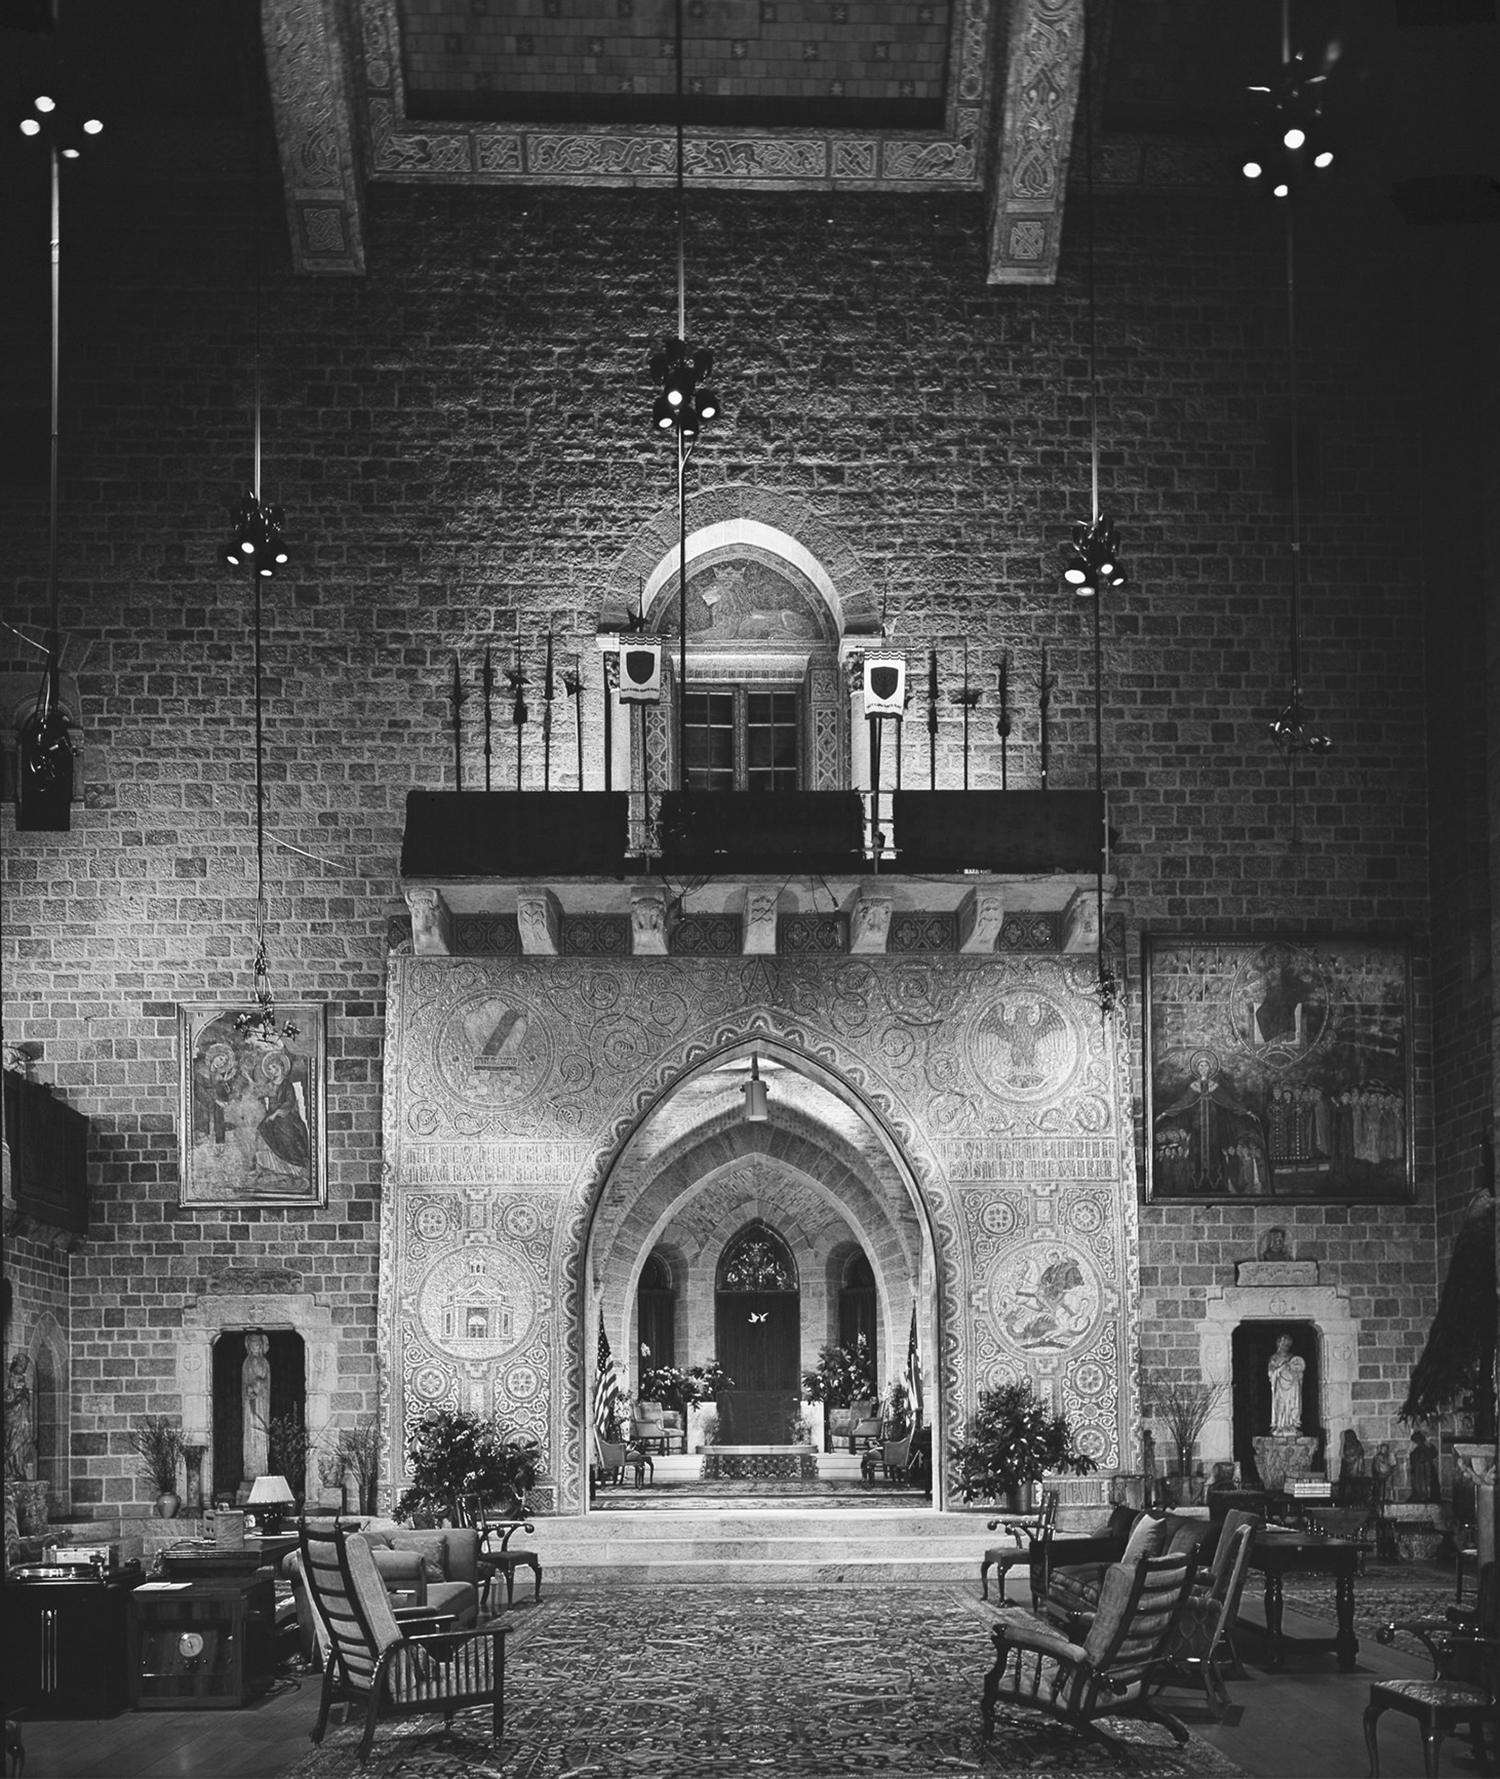 Figure 4: Photograph of Glencairn's Great Hall, taken when the Pitcairn family lived in the building. Works of authentic medieval sculpture, stained glass, and frescoes are integrated with 20th-century art created by craftsmen from Bryn Athyn Studios.